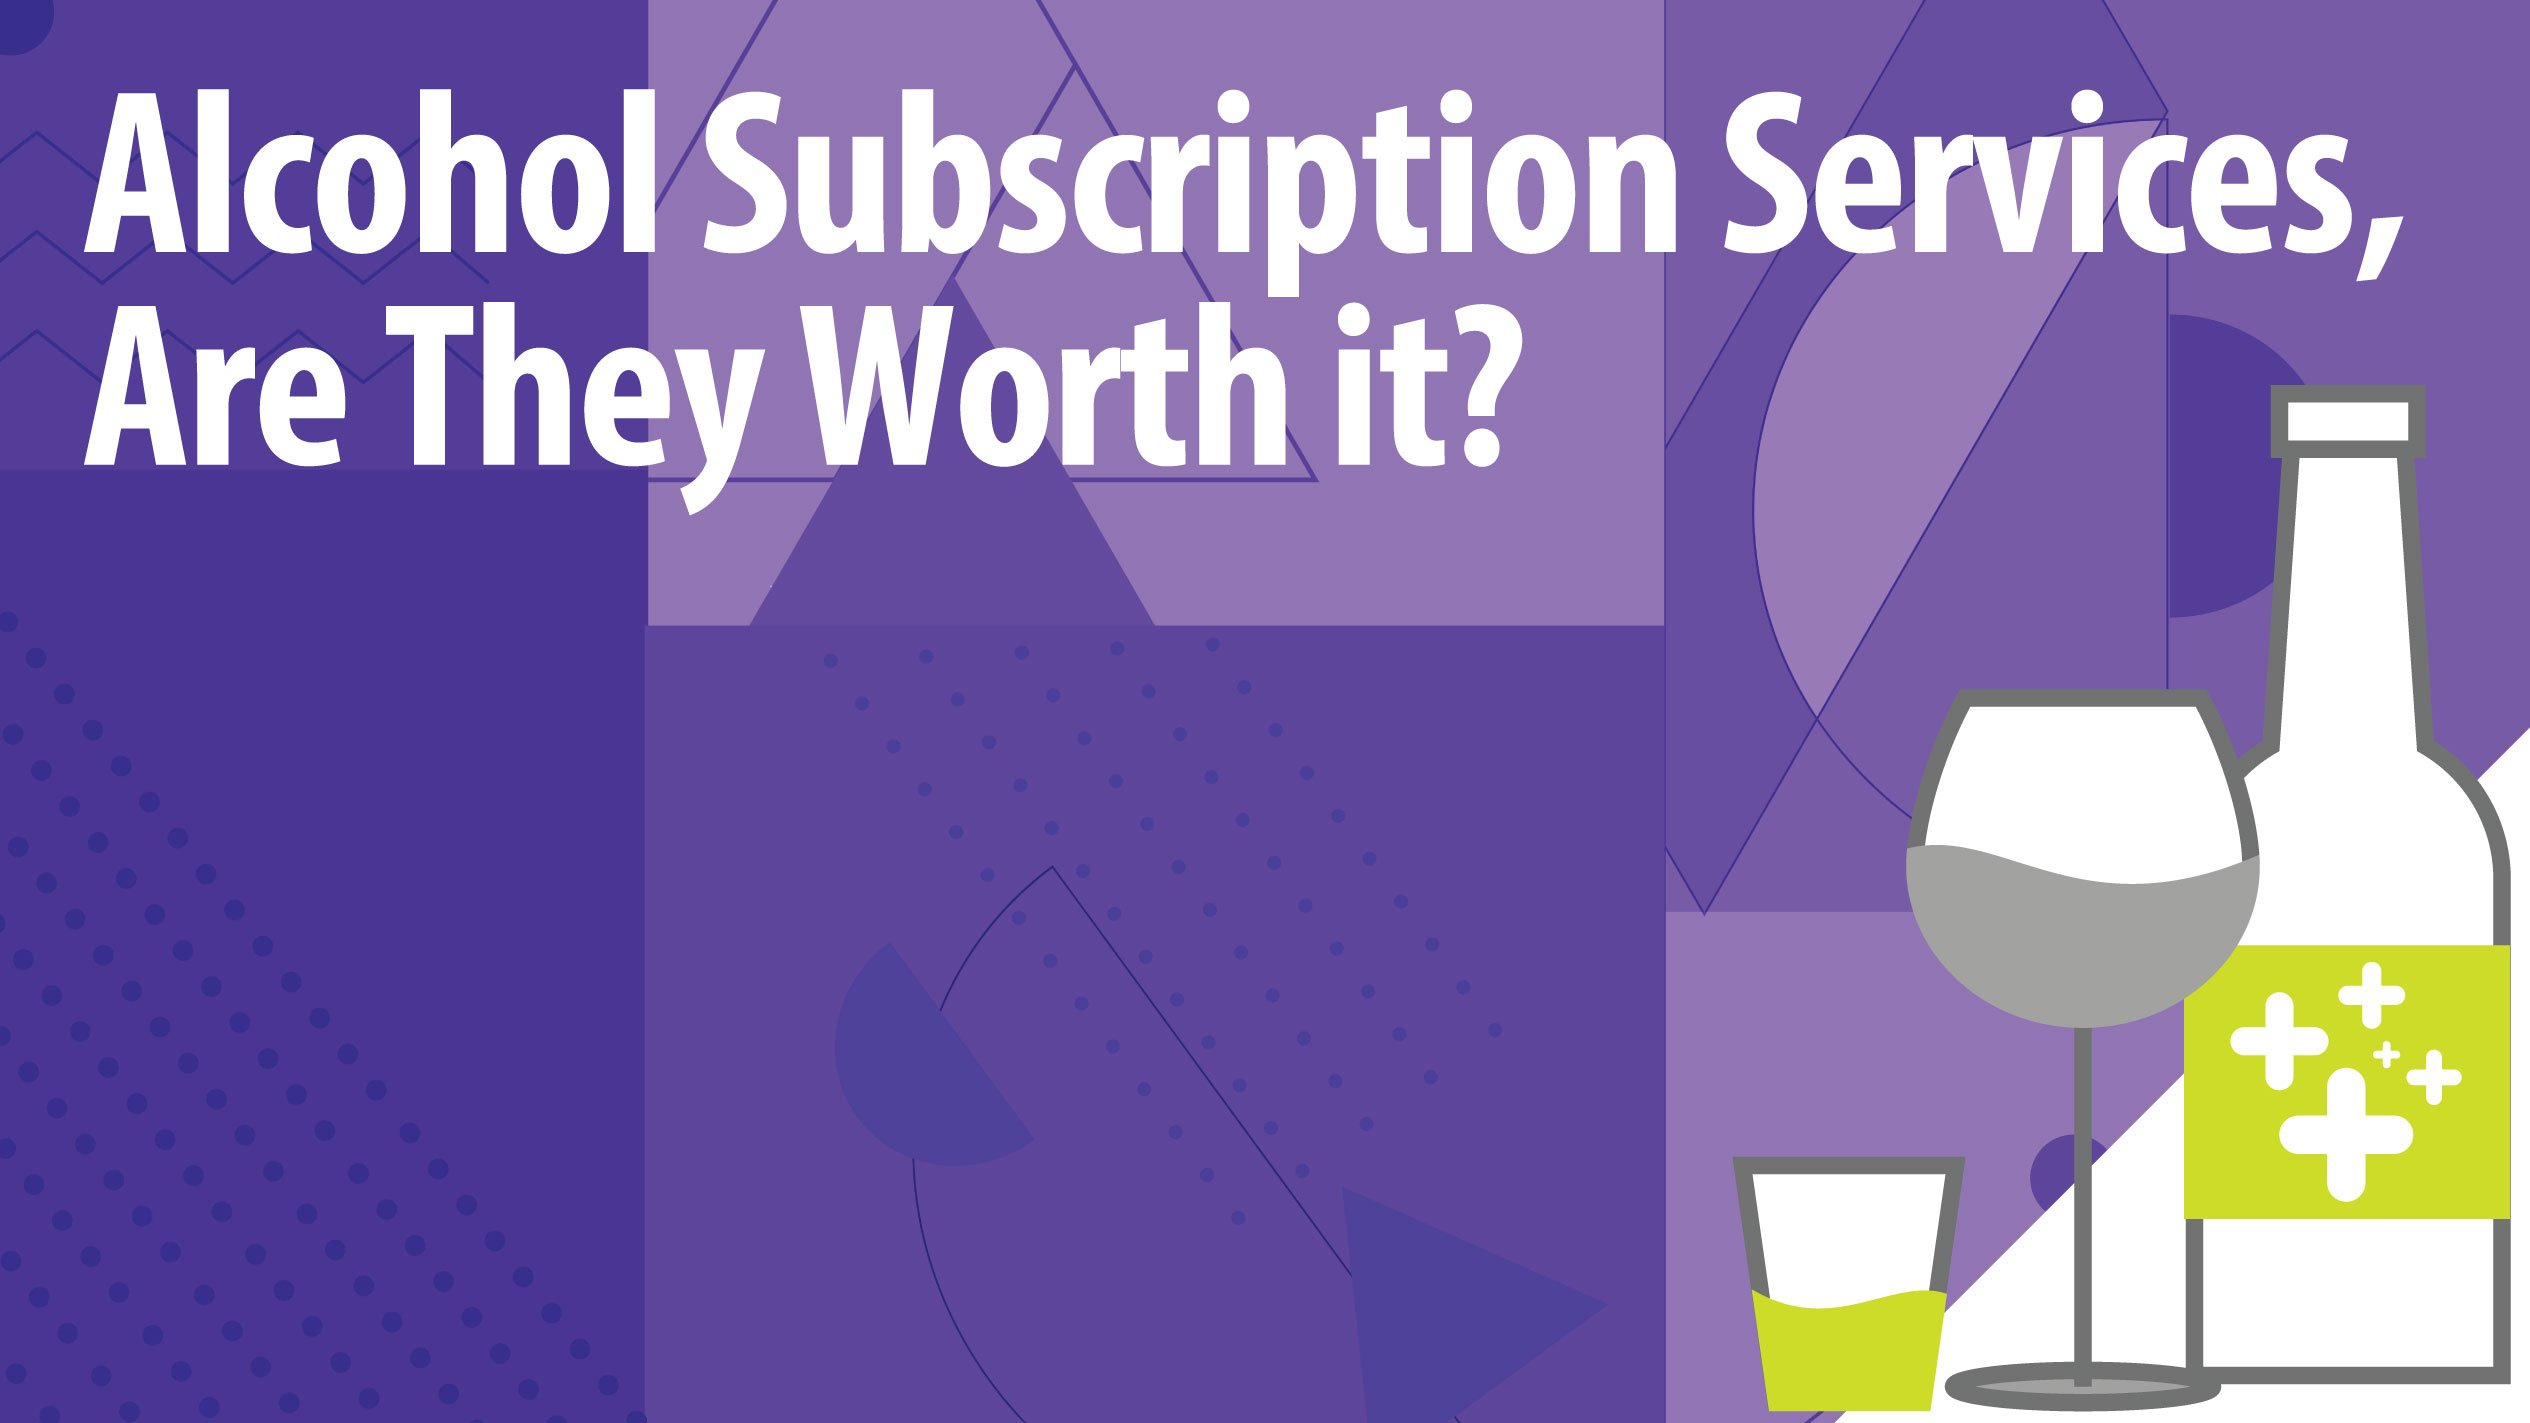 Alcohol Subscription Services, Are They Worth it?